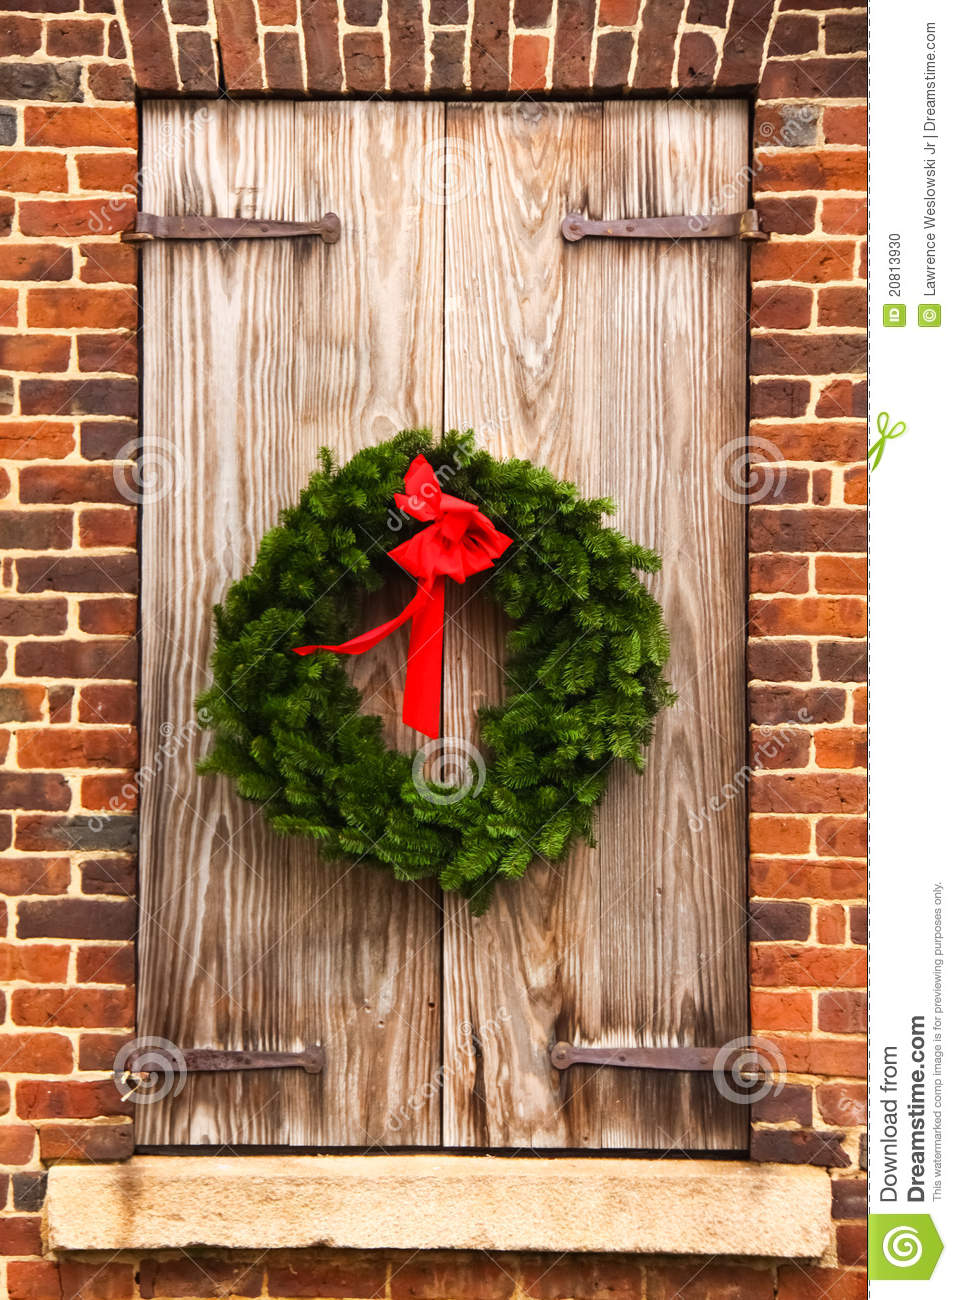 Christmas Wreath Wooden Shutters Red Brick Wall Stock